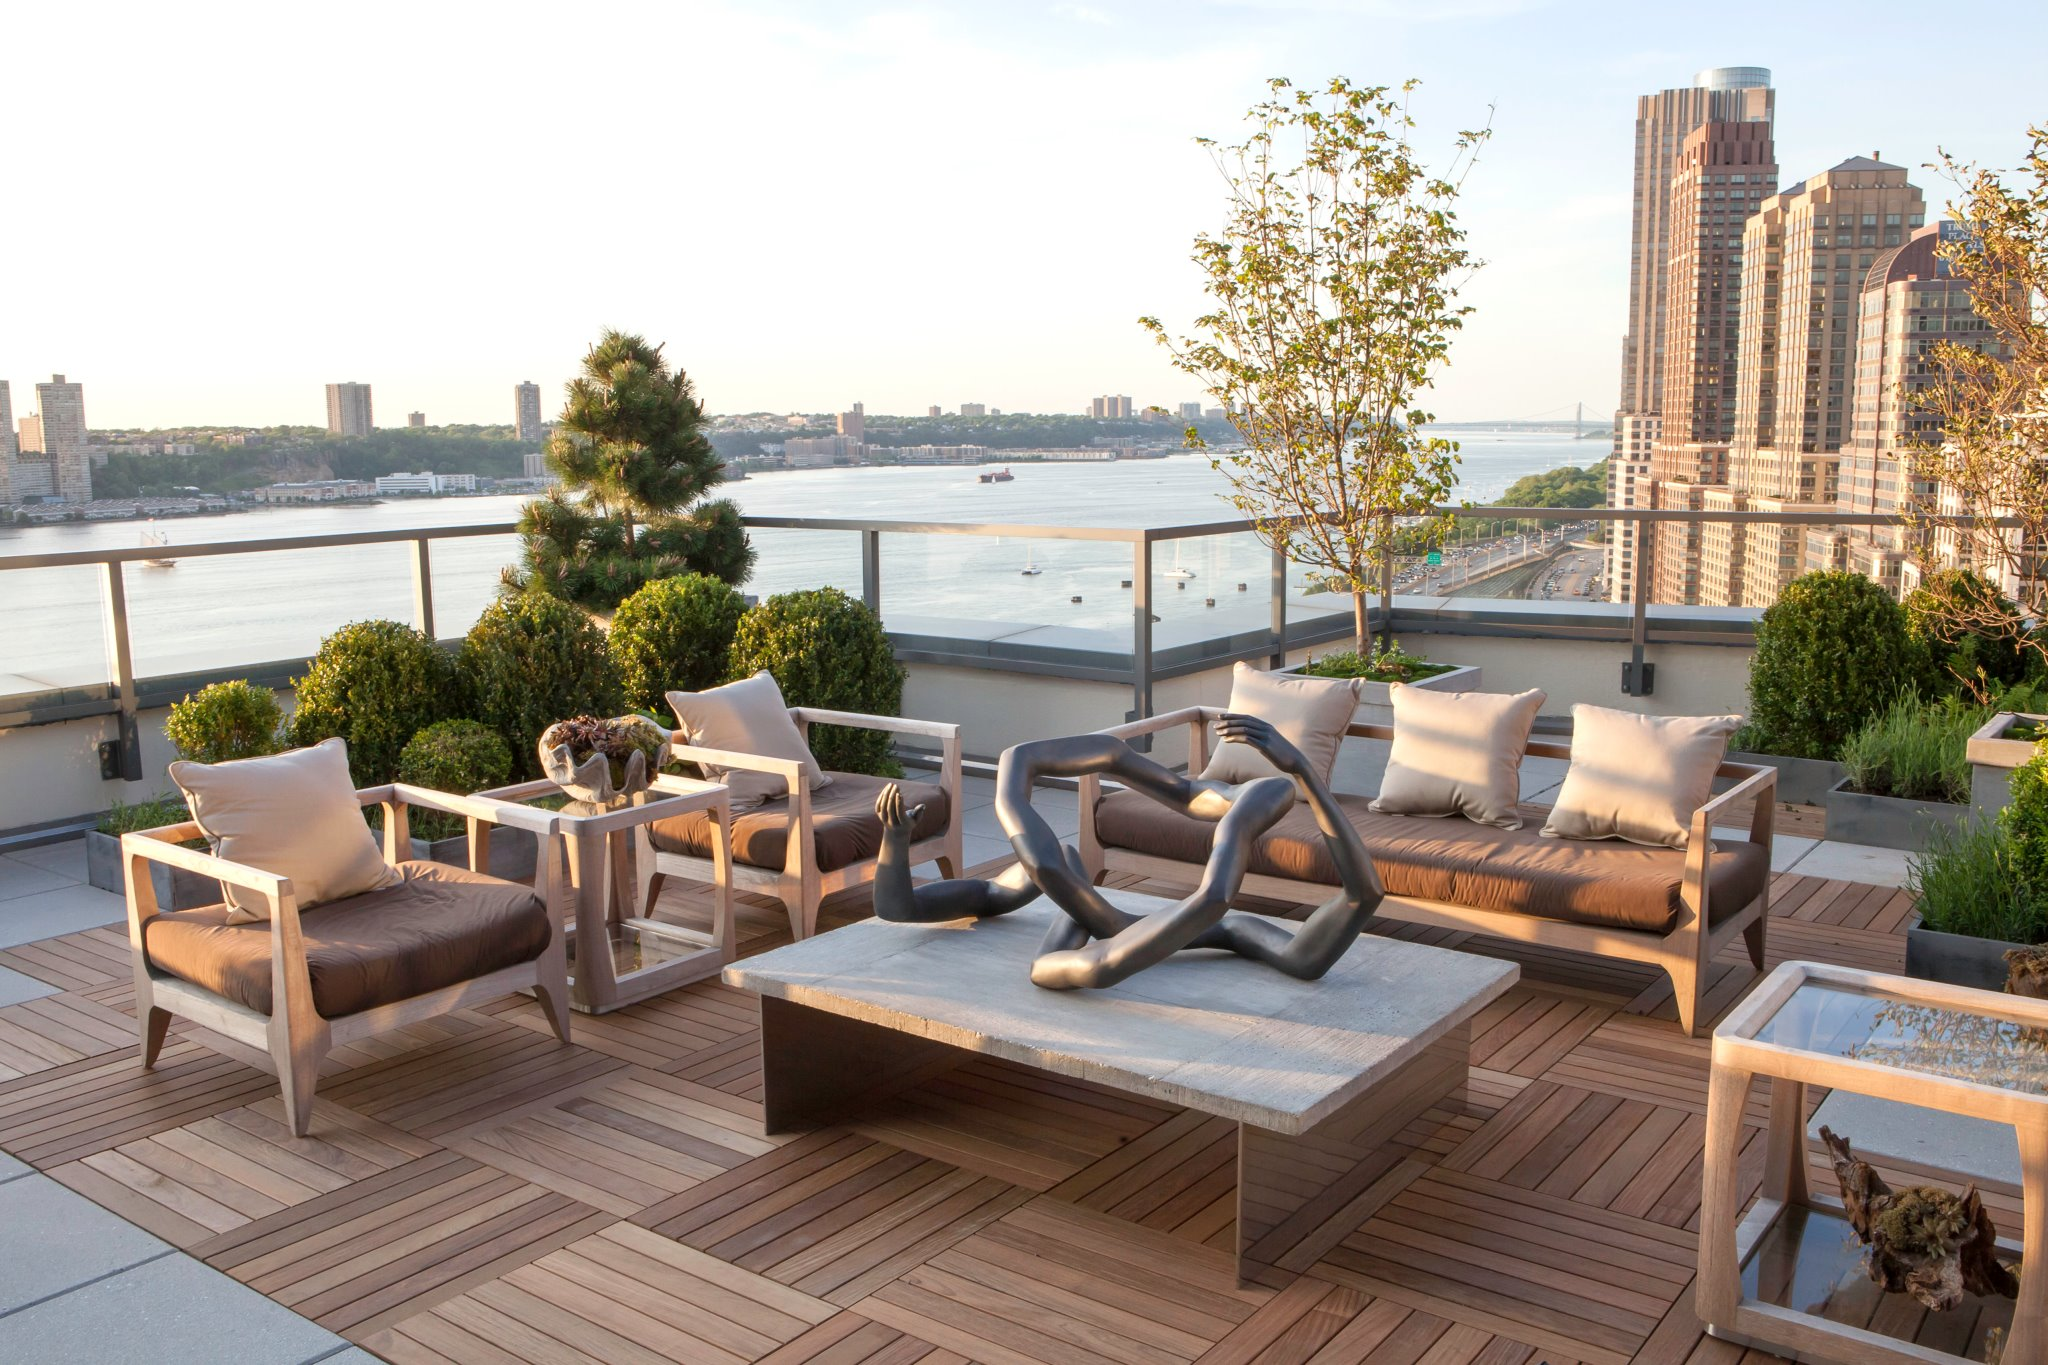 Roof Design Ideas: » Cool & Unusual RoofDecks